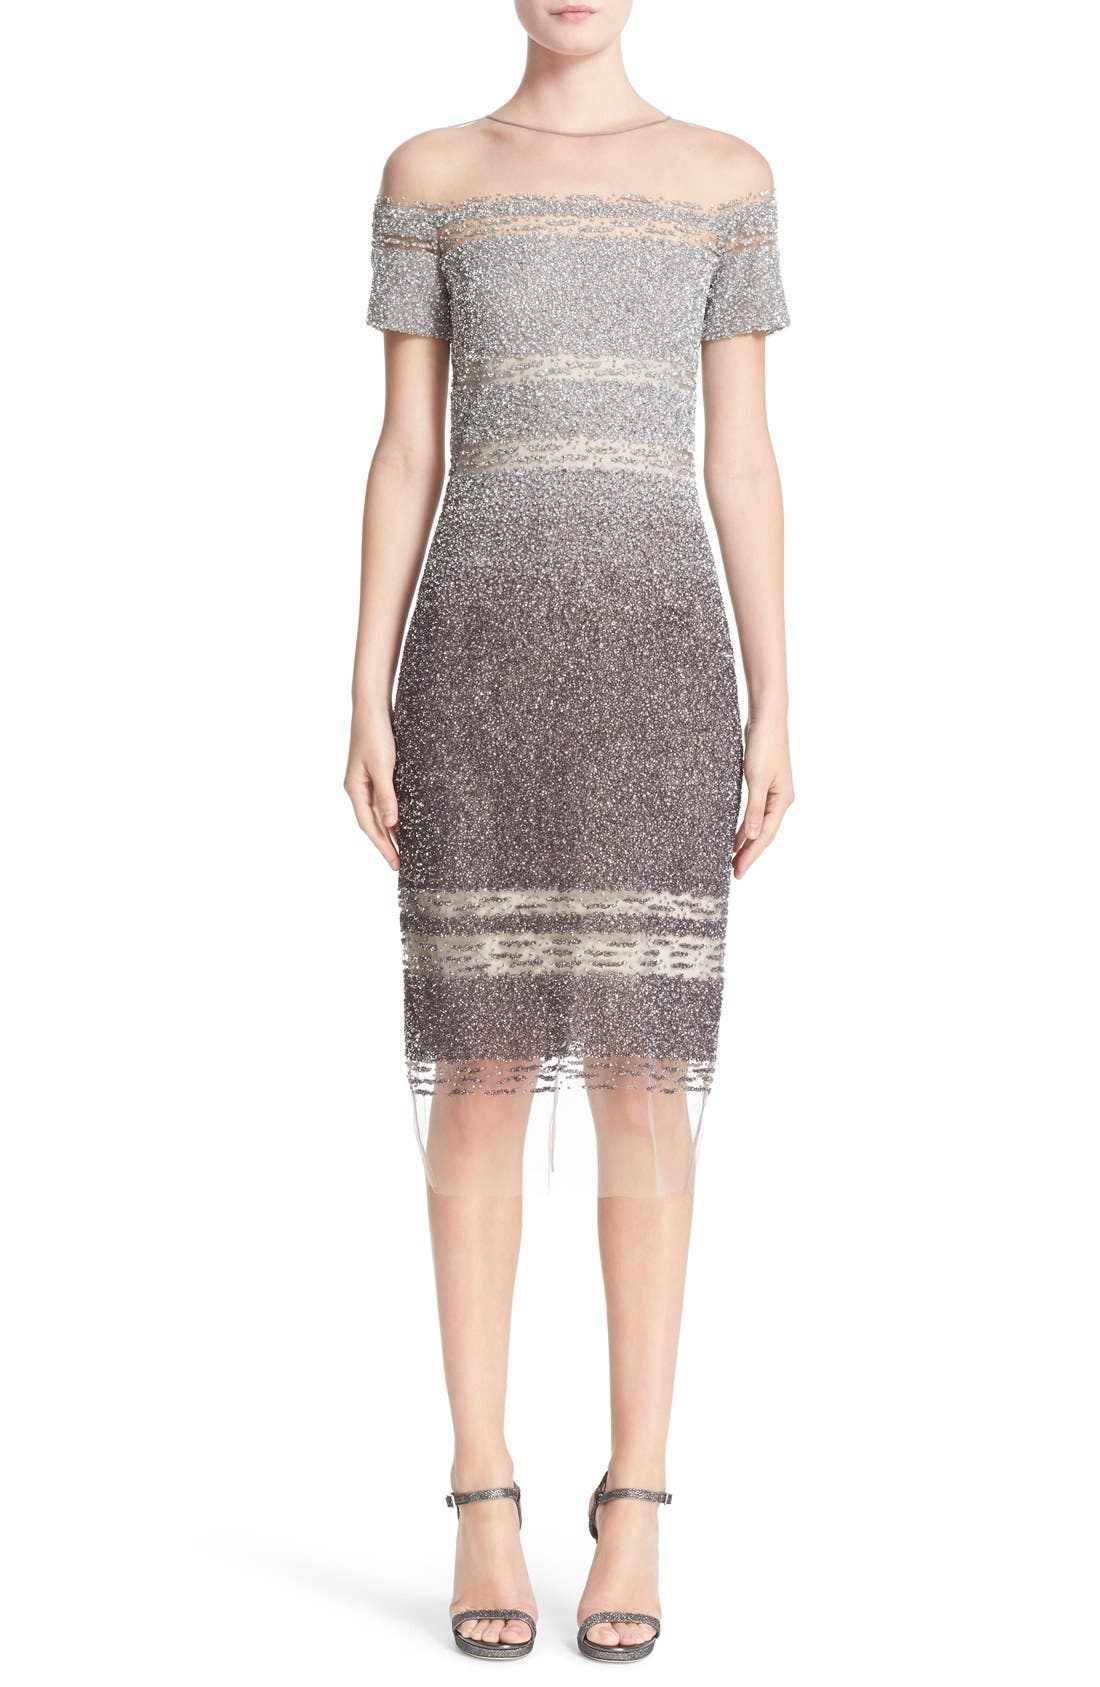 PAMELLA ROLAND Signature Sequin Cap Sleeve Cocktail Dress